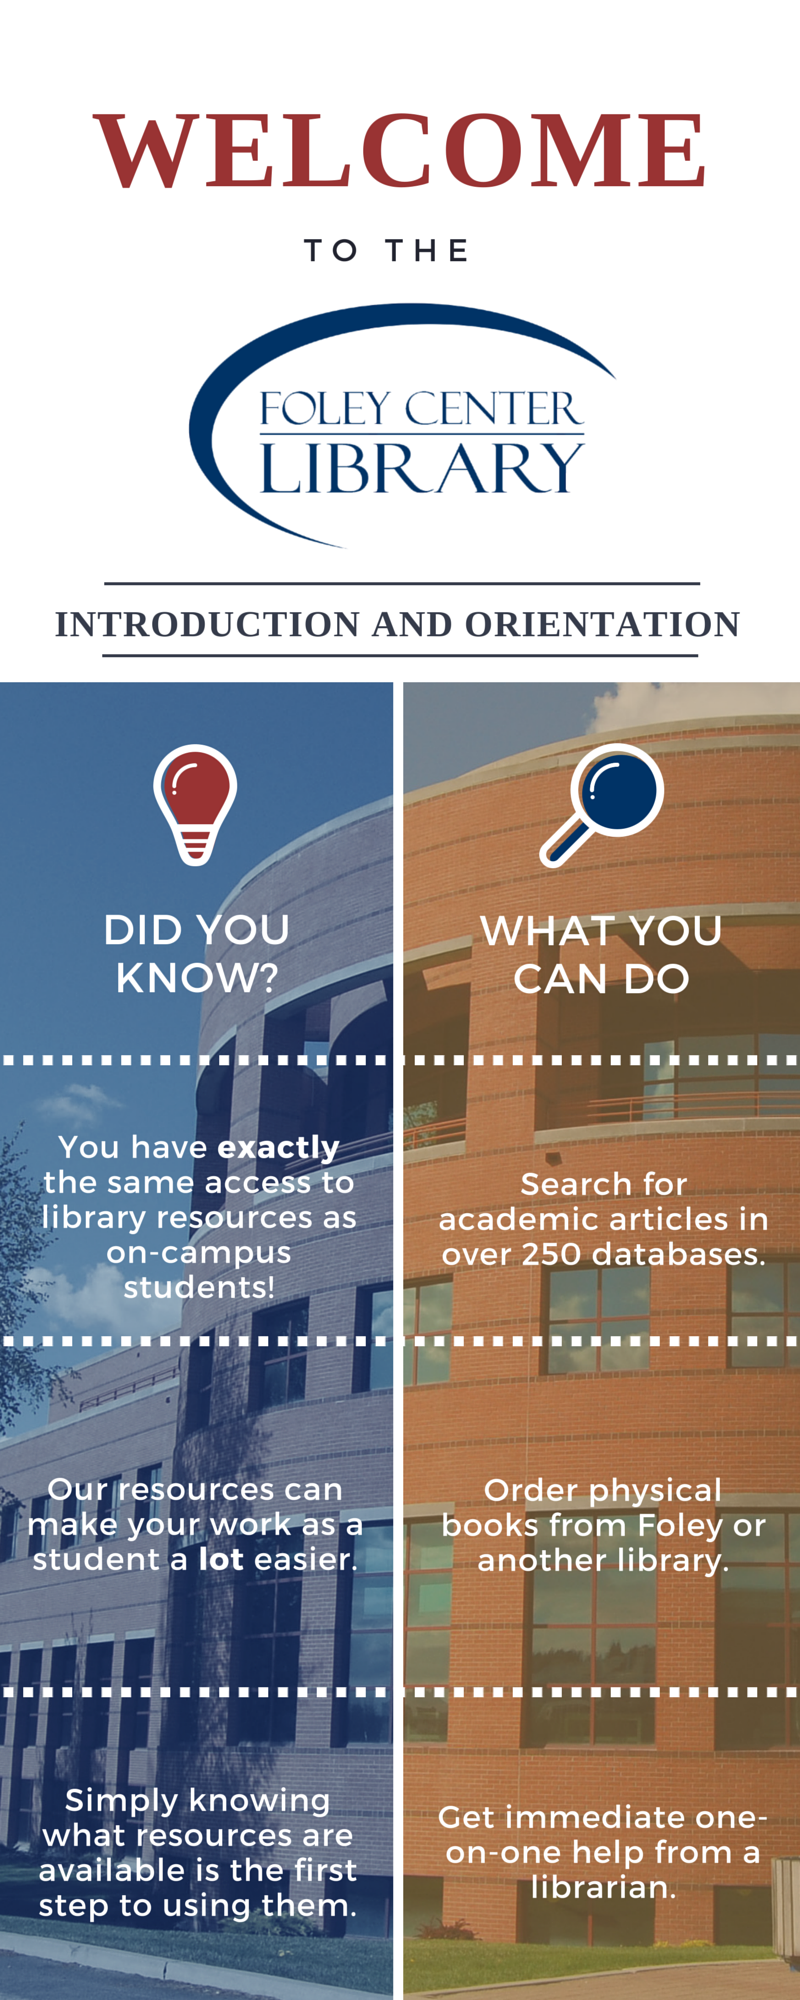 Welcome to the Foley Center Library Introduction and Orientation. Did you know? You have exactly the same access to library resources as on-campus students. Our resources can make your work as a student a lot easier. Simply knowing what resources are available is the first step to using them. What you can do is: Search for academic articles in over 250 databases, order physical books from Foley or another library, and get immediate one-on-one help from a librarian.